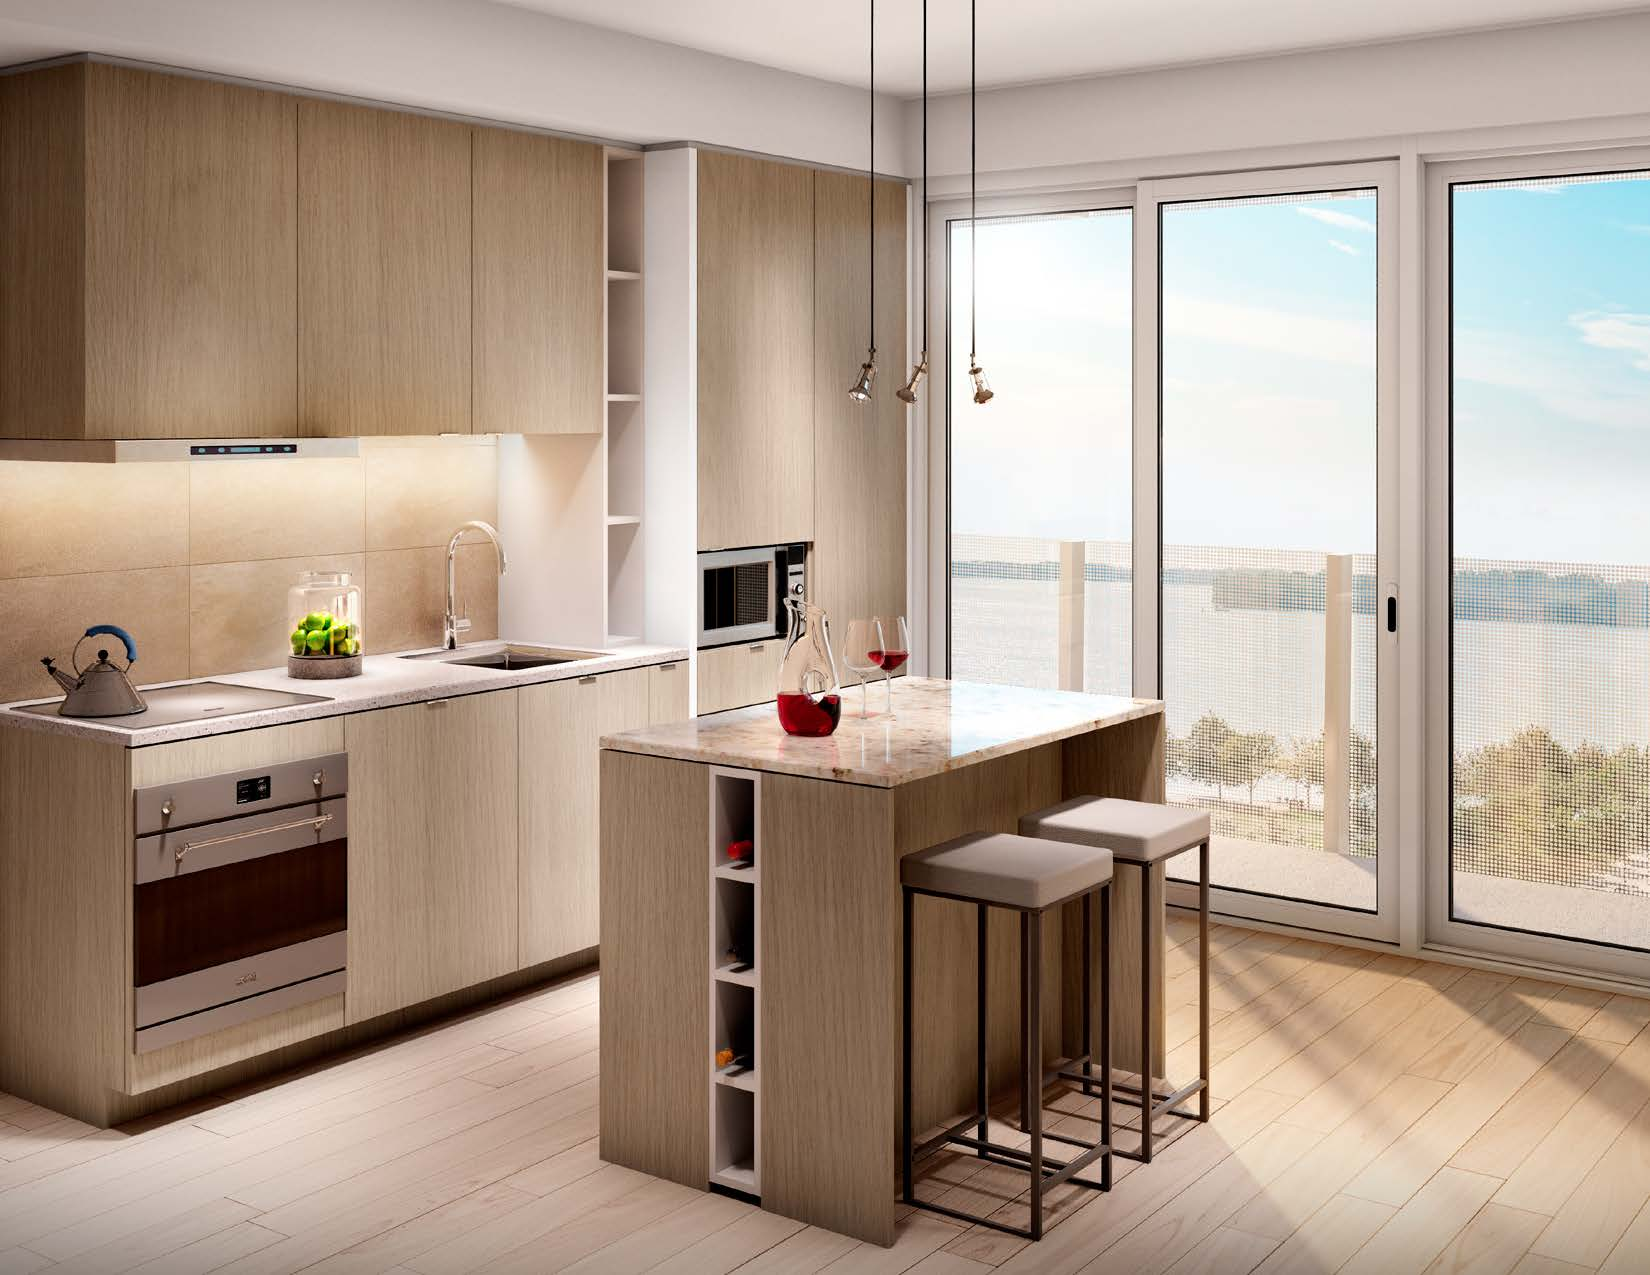 Lakeside Condos for Sale - Kitchen